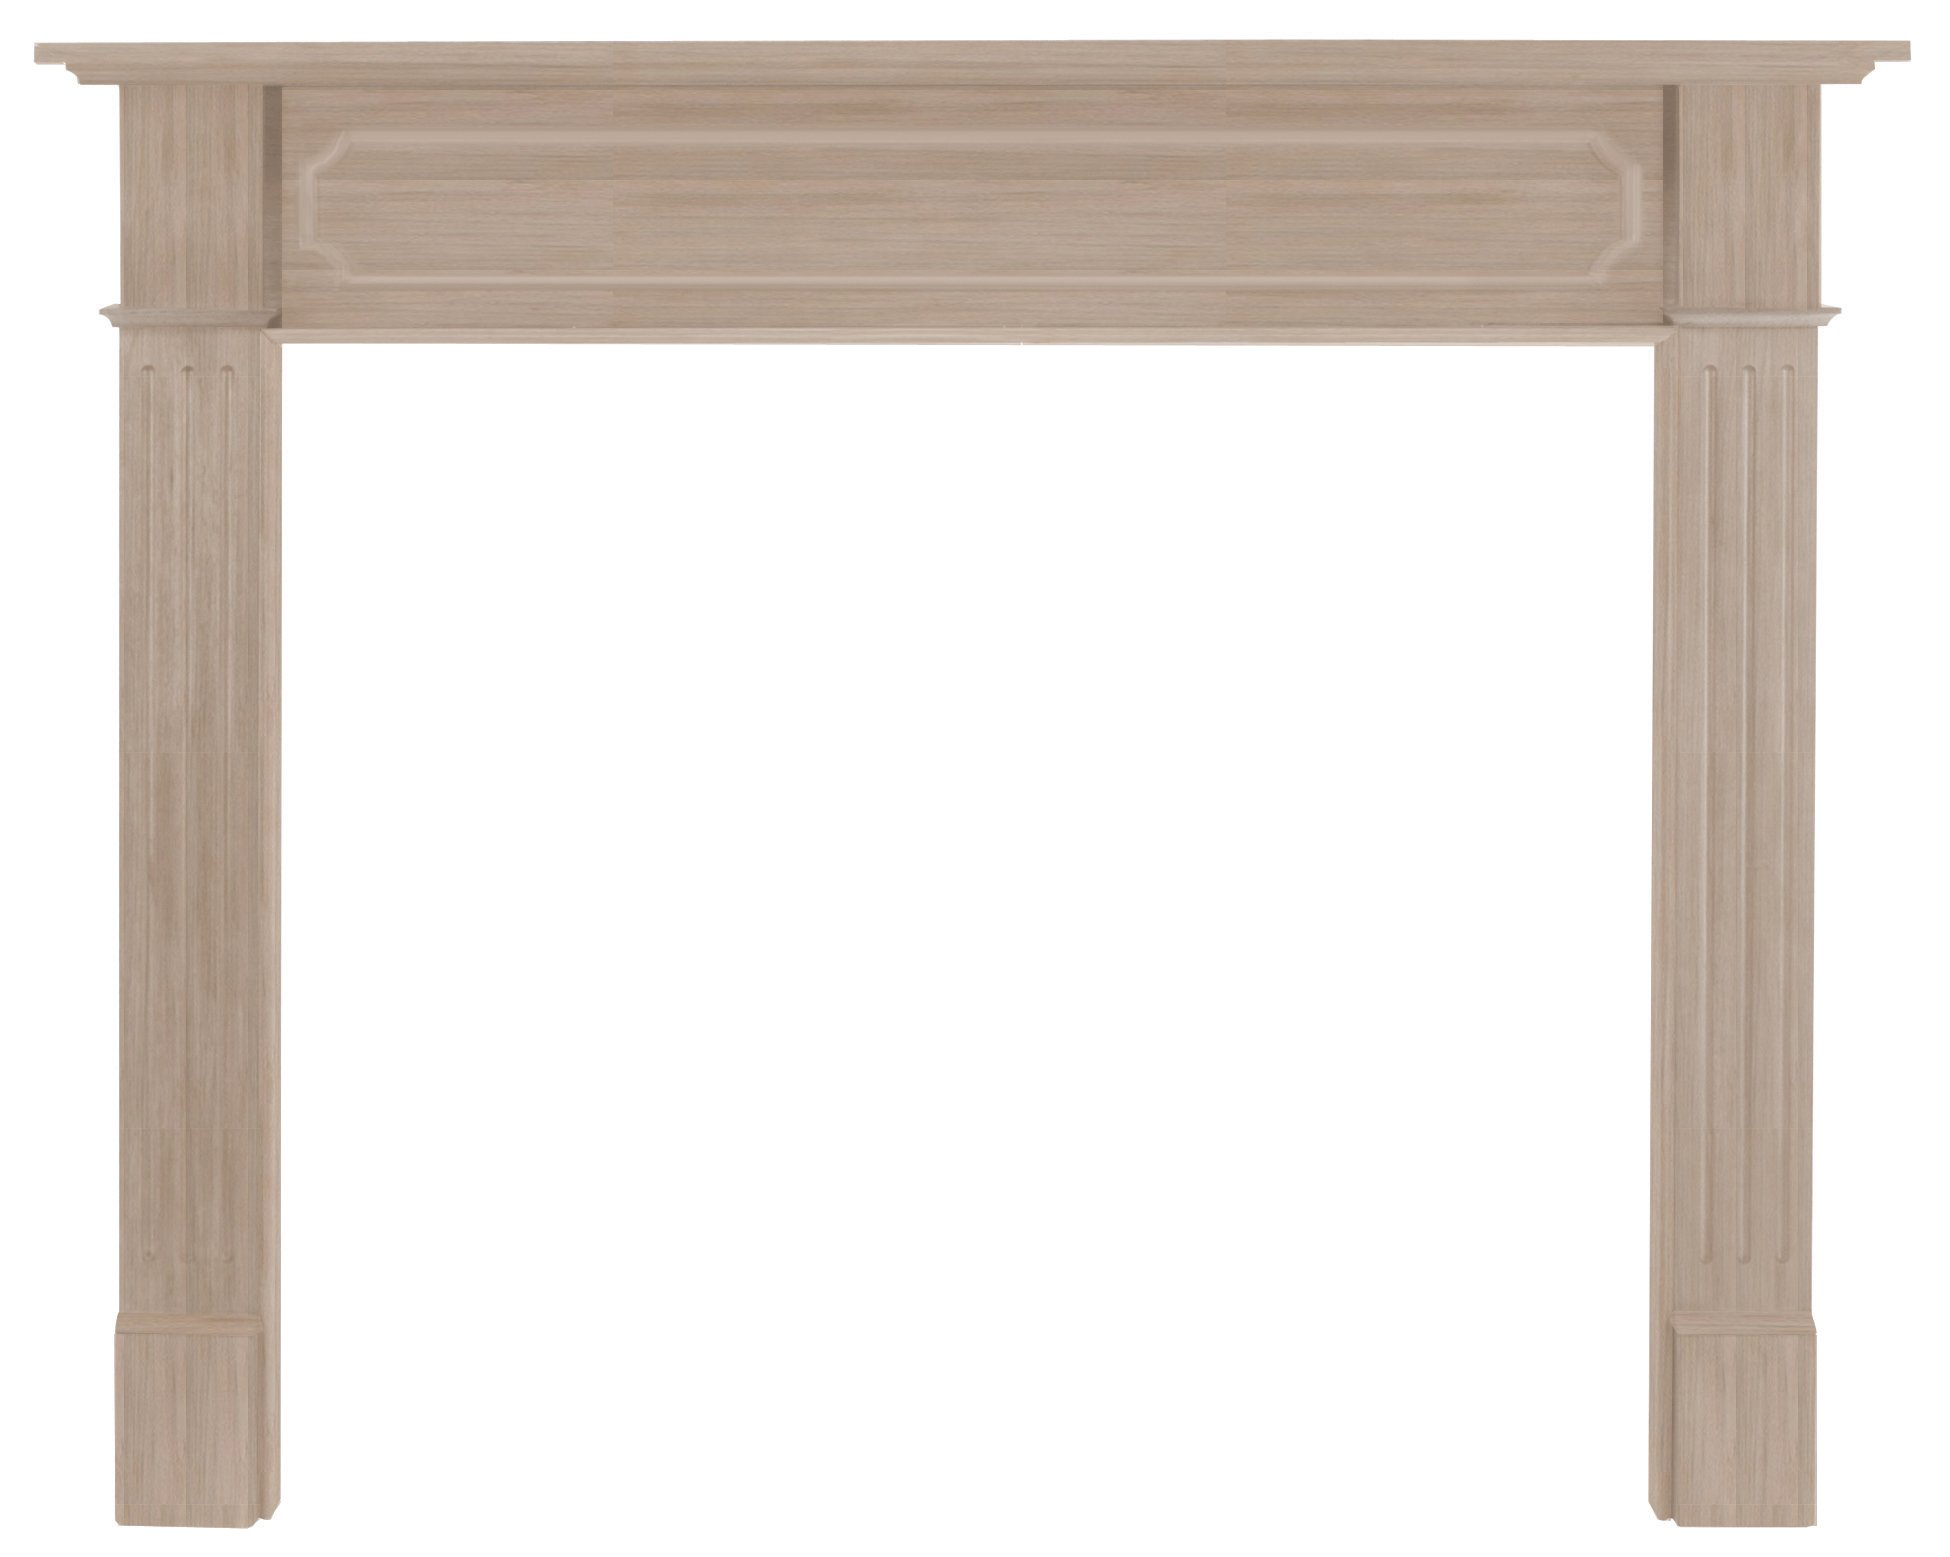 Pearl Mantels 111-50 Alamo 50-Inch Fireplace Mantel, Unfinished by Pearl Mantels